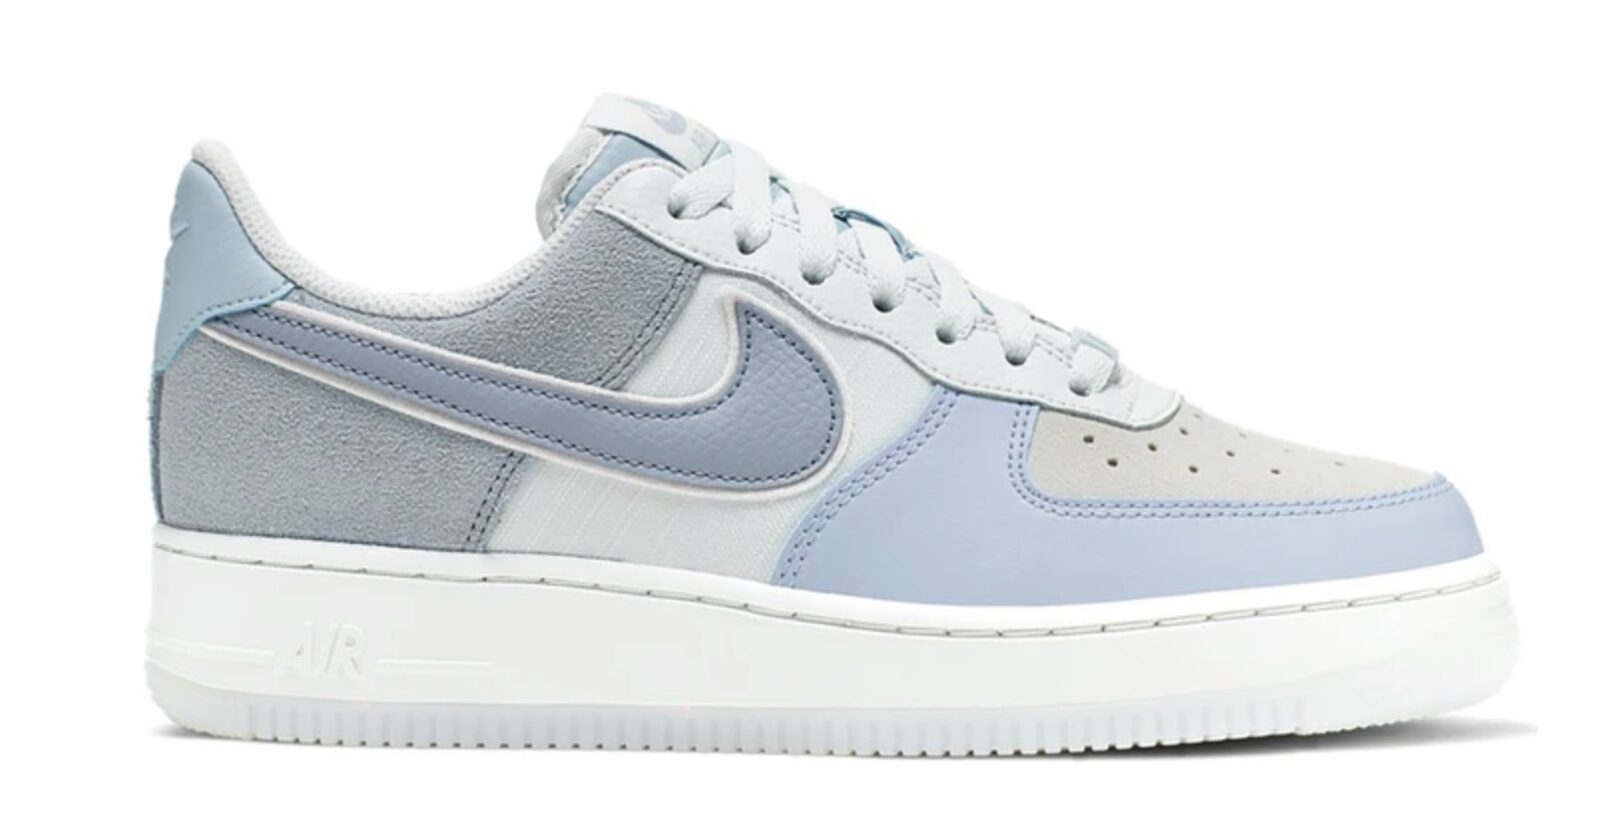 Nike Air Force 1 Low Light Armory Blue